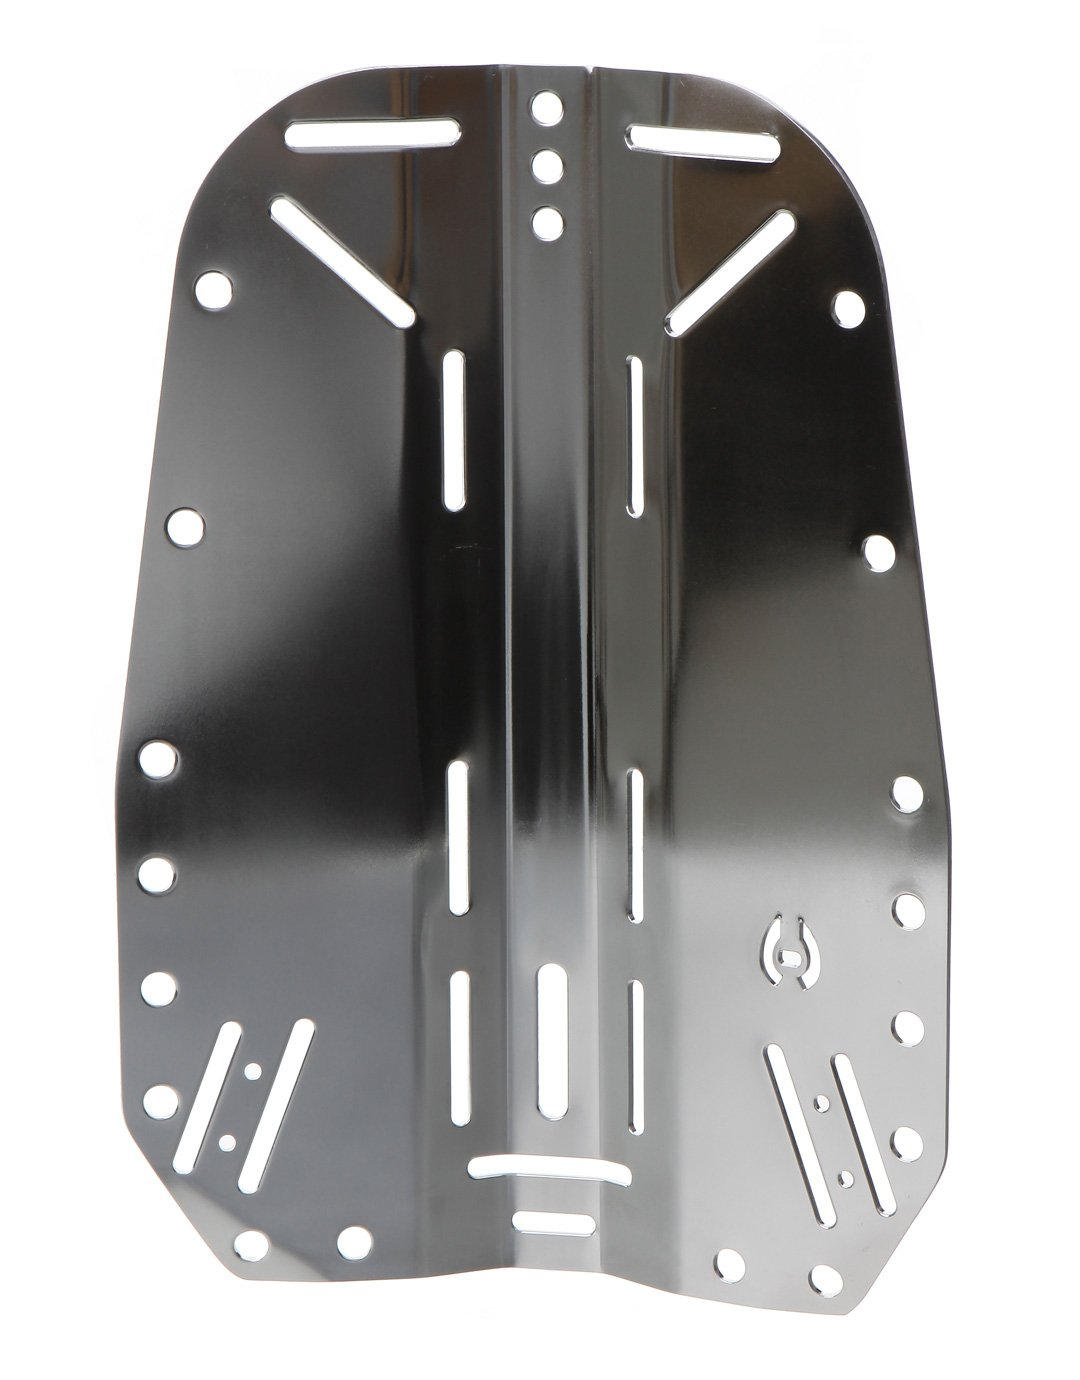 Image of Hollis Stainless Steel Backplate